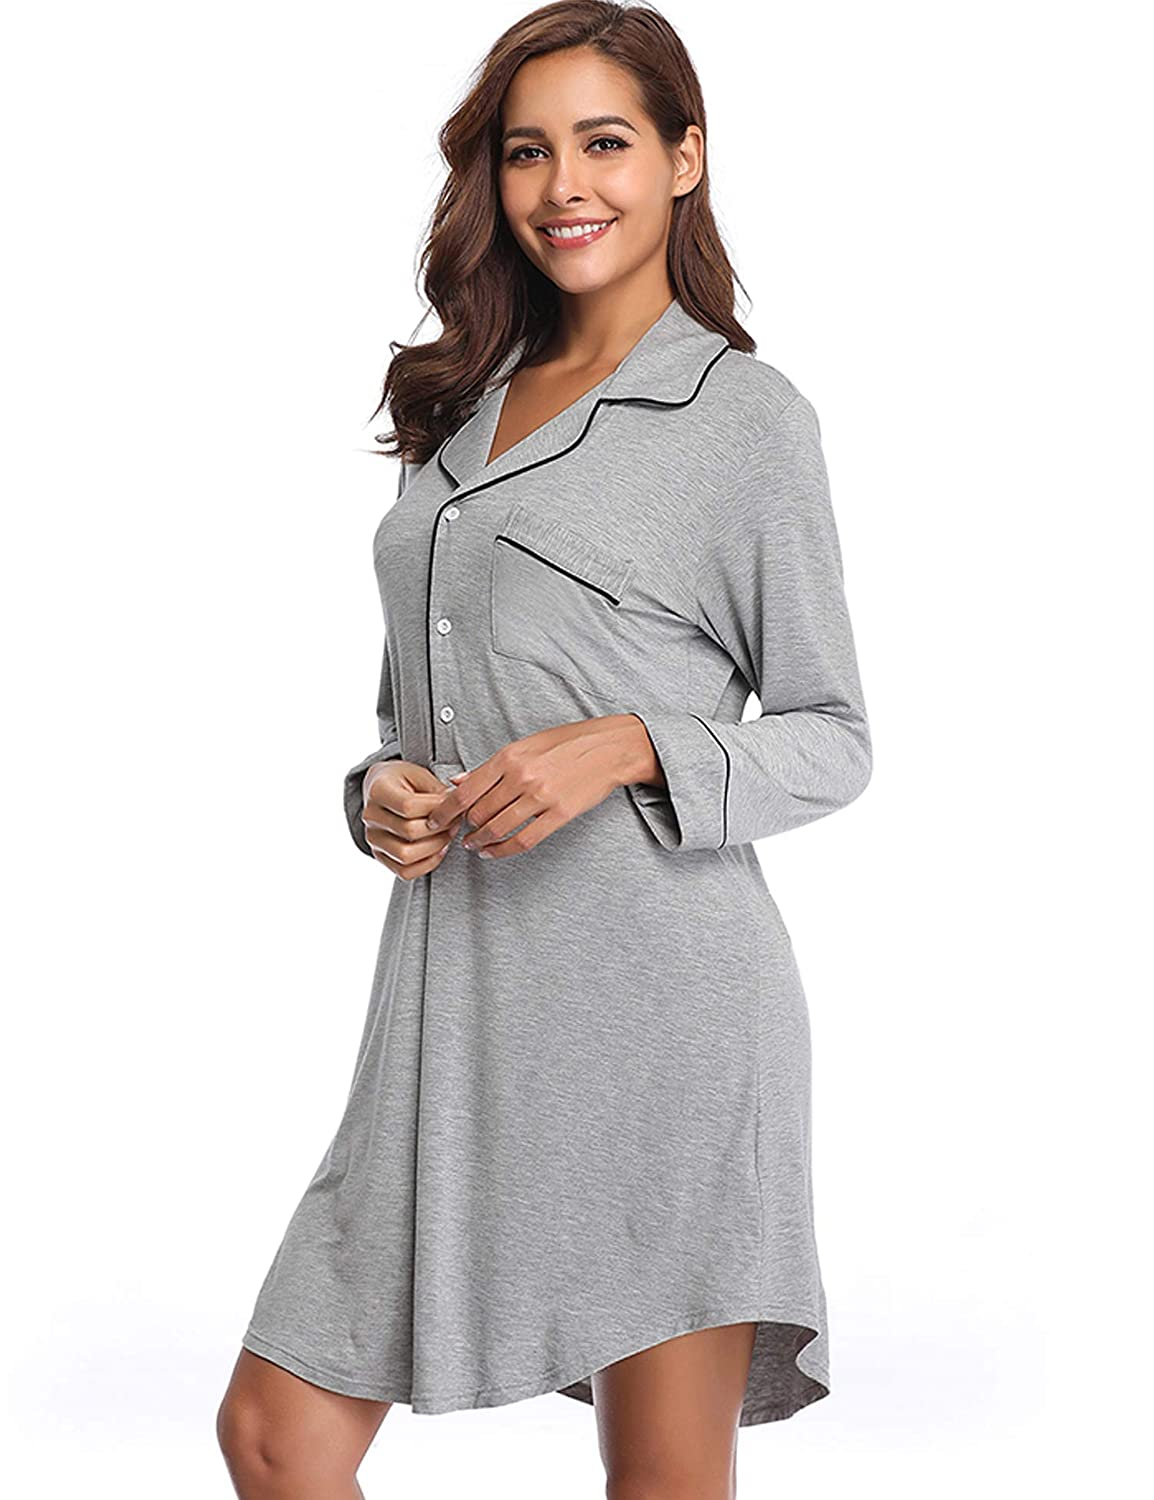 04dd4ead85 Lusofie Nightgown Womens Long Sleeve Nightshirt Boyfriend Sleep Shirt Button -up Lapel Collar Sleepwear USATYN1000370